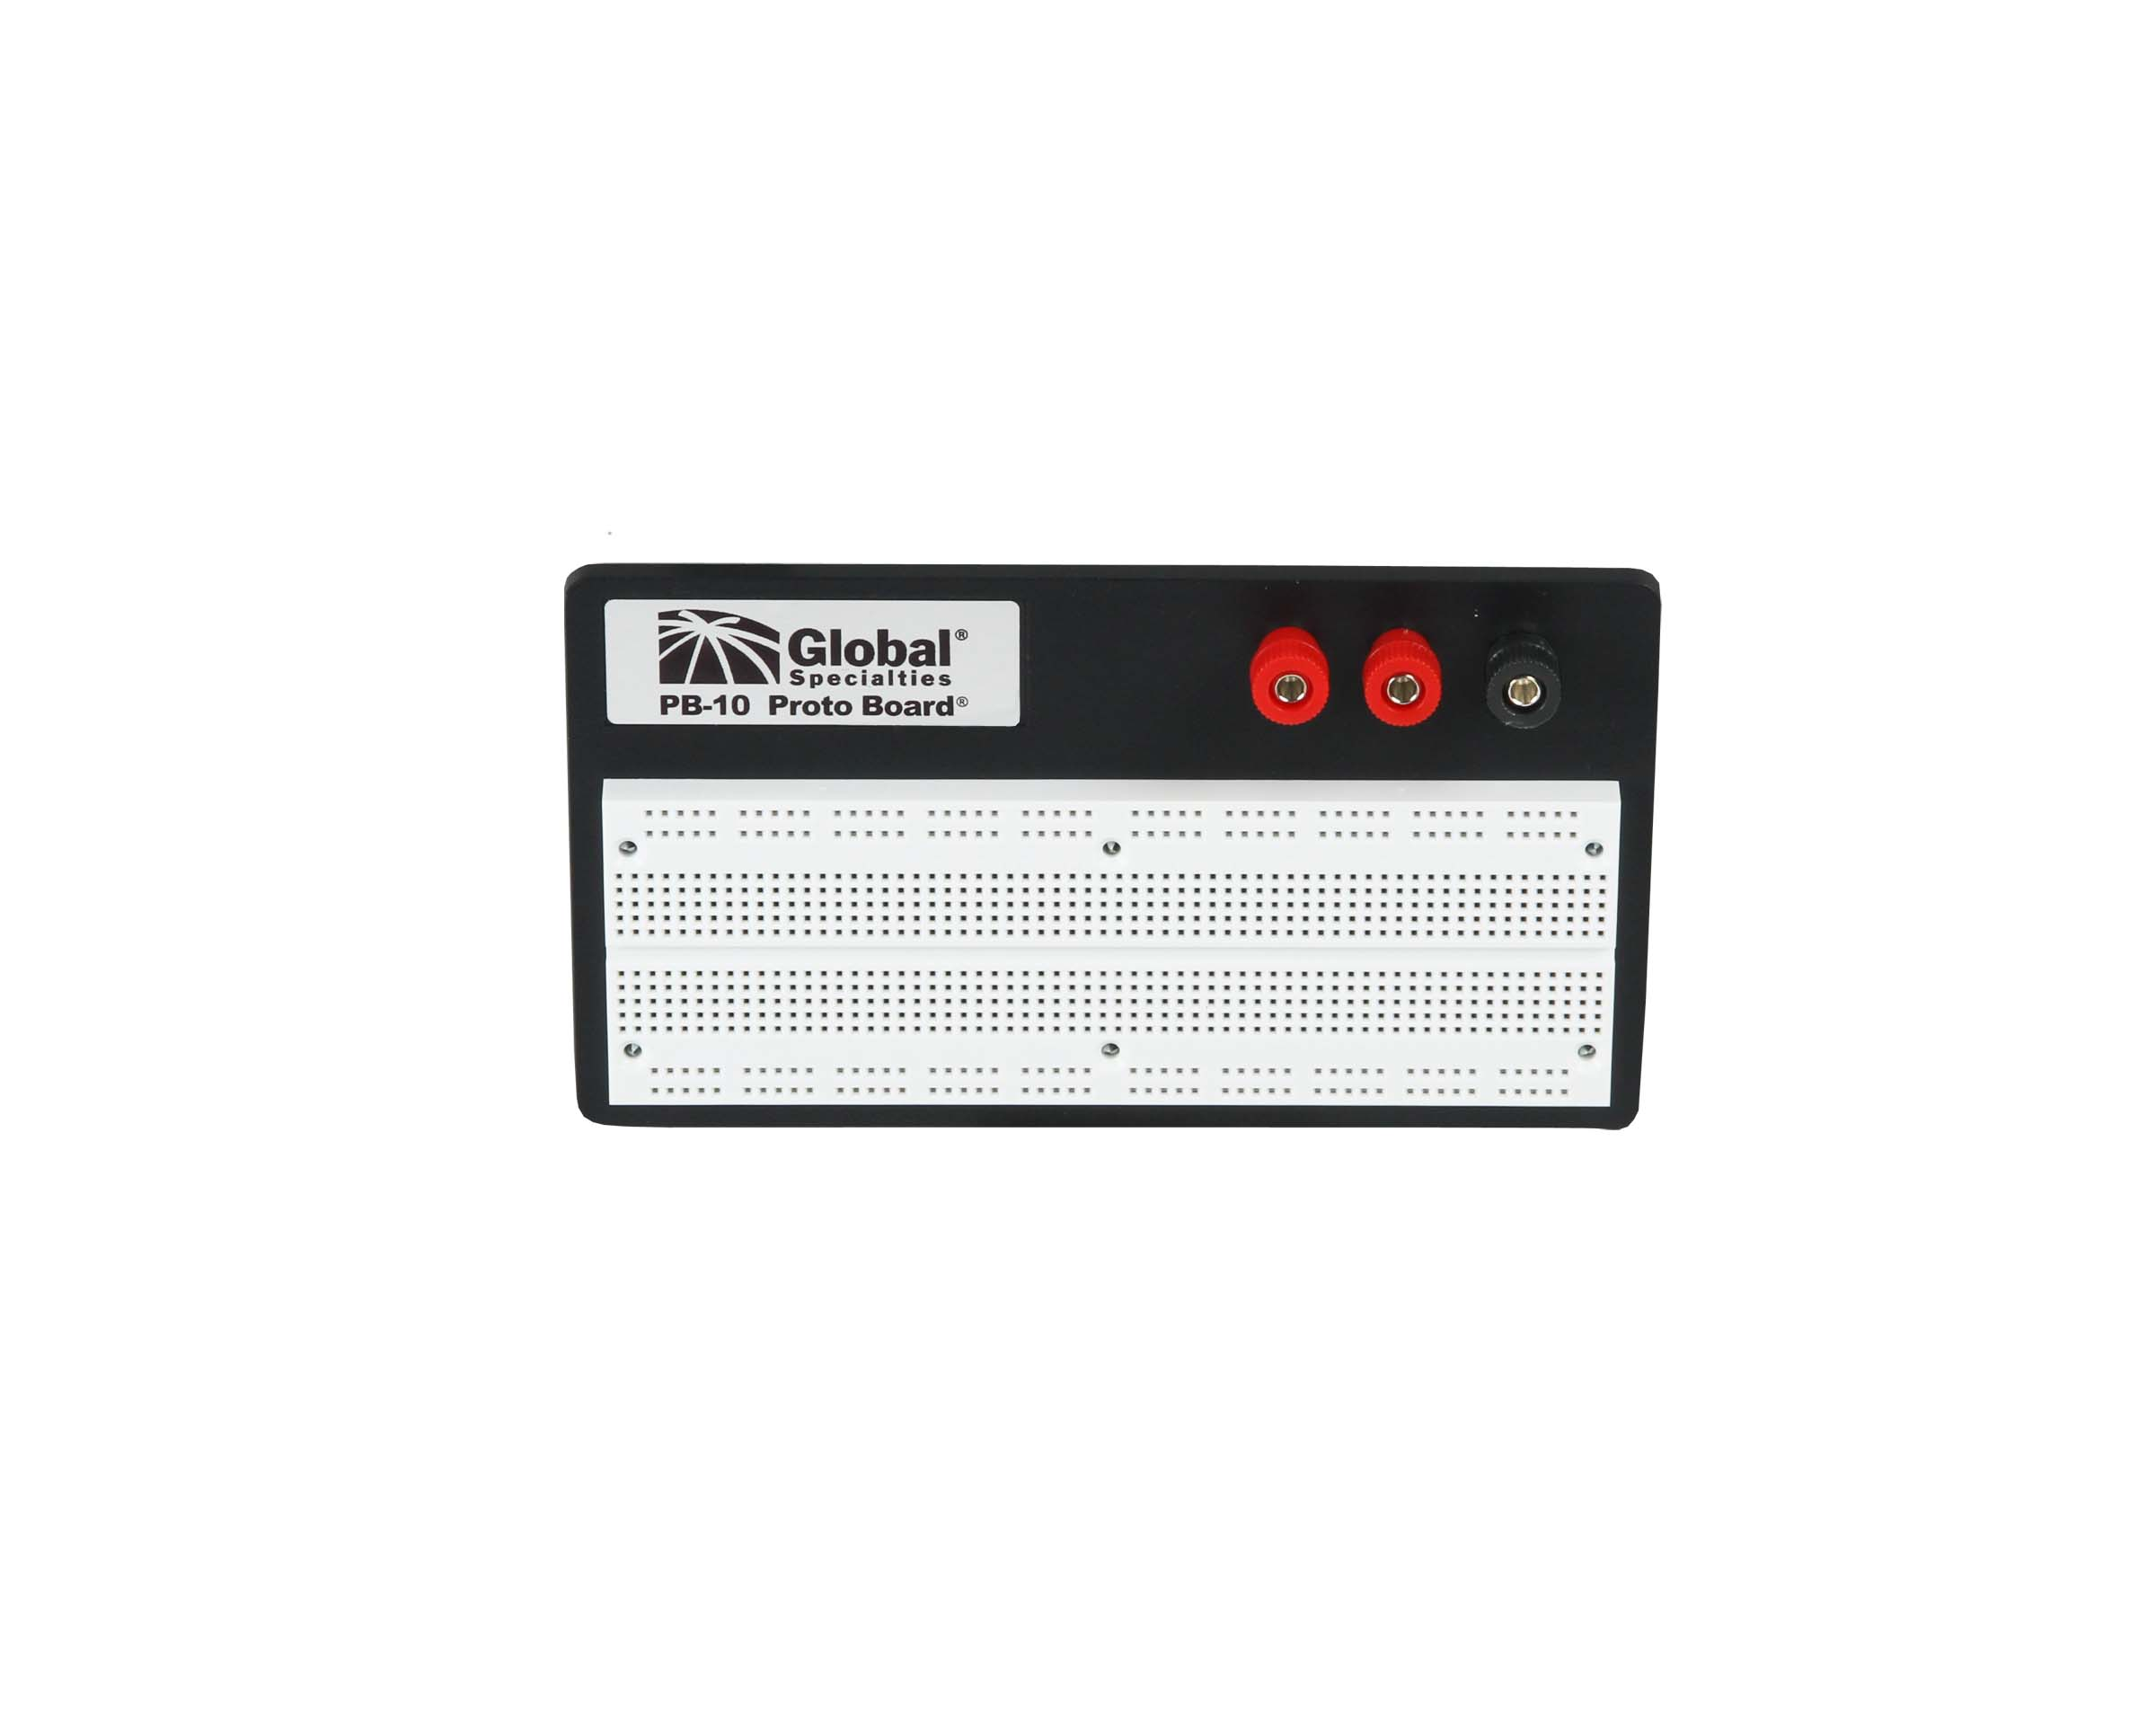 Global Specialties PB-10 Externally Powered 840 Tie-Point Breadboard